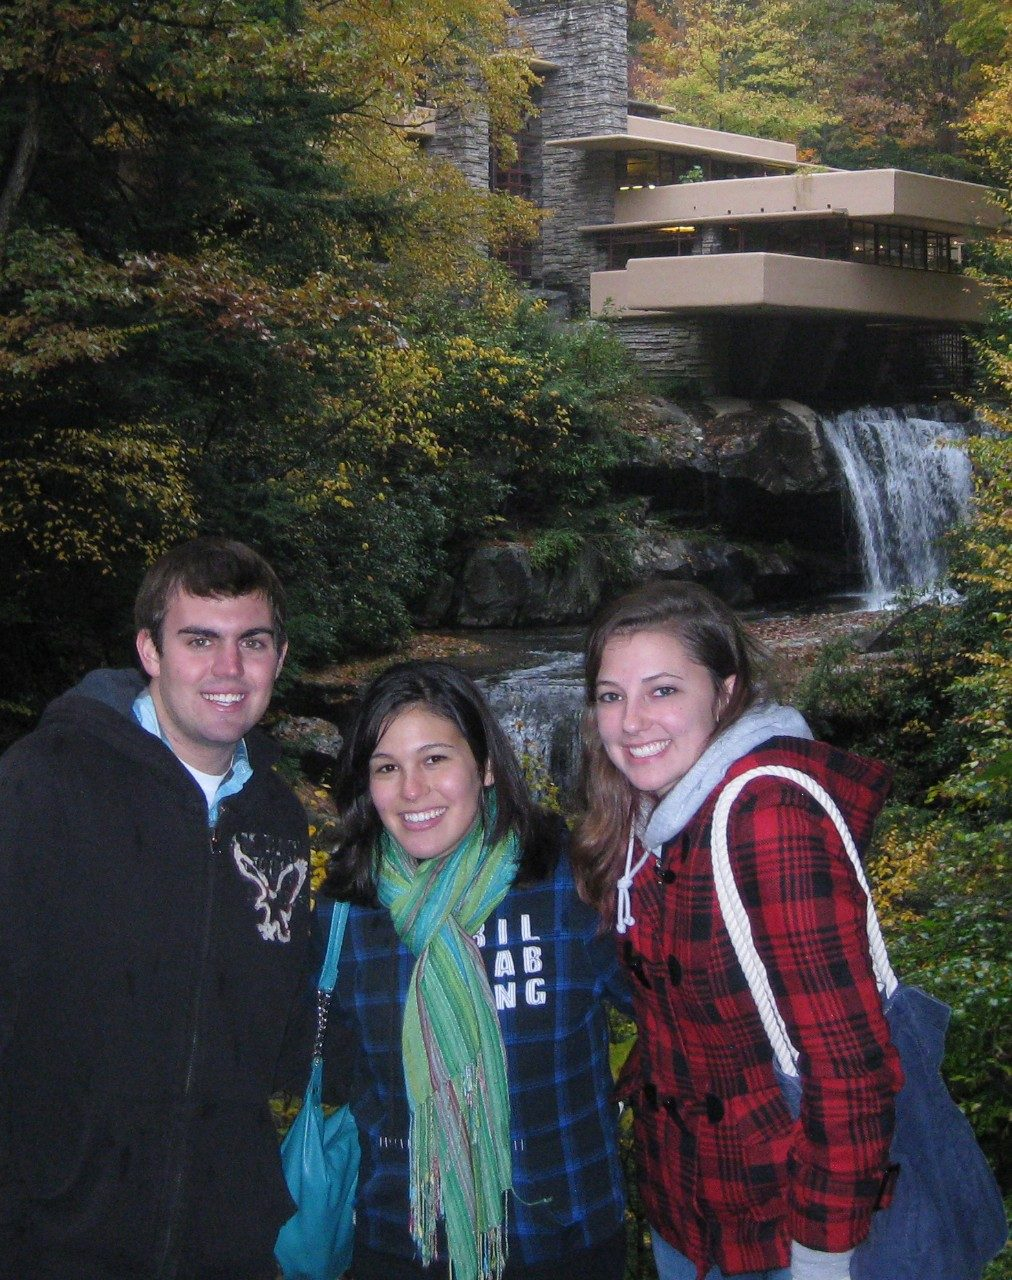 Erin Sanchez (center) poses with other students during a class trip to Fallingwater, the iconic house designed by architect Frank Lloyd Wright.